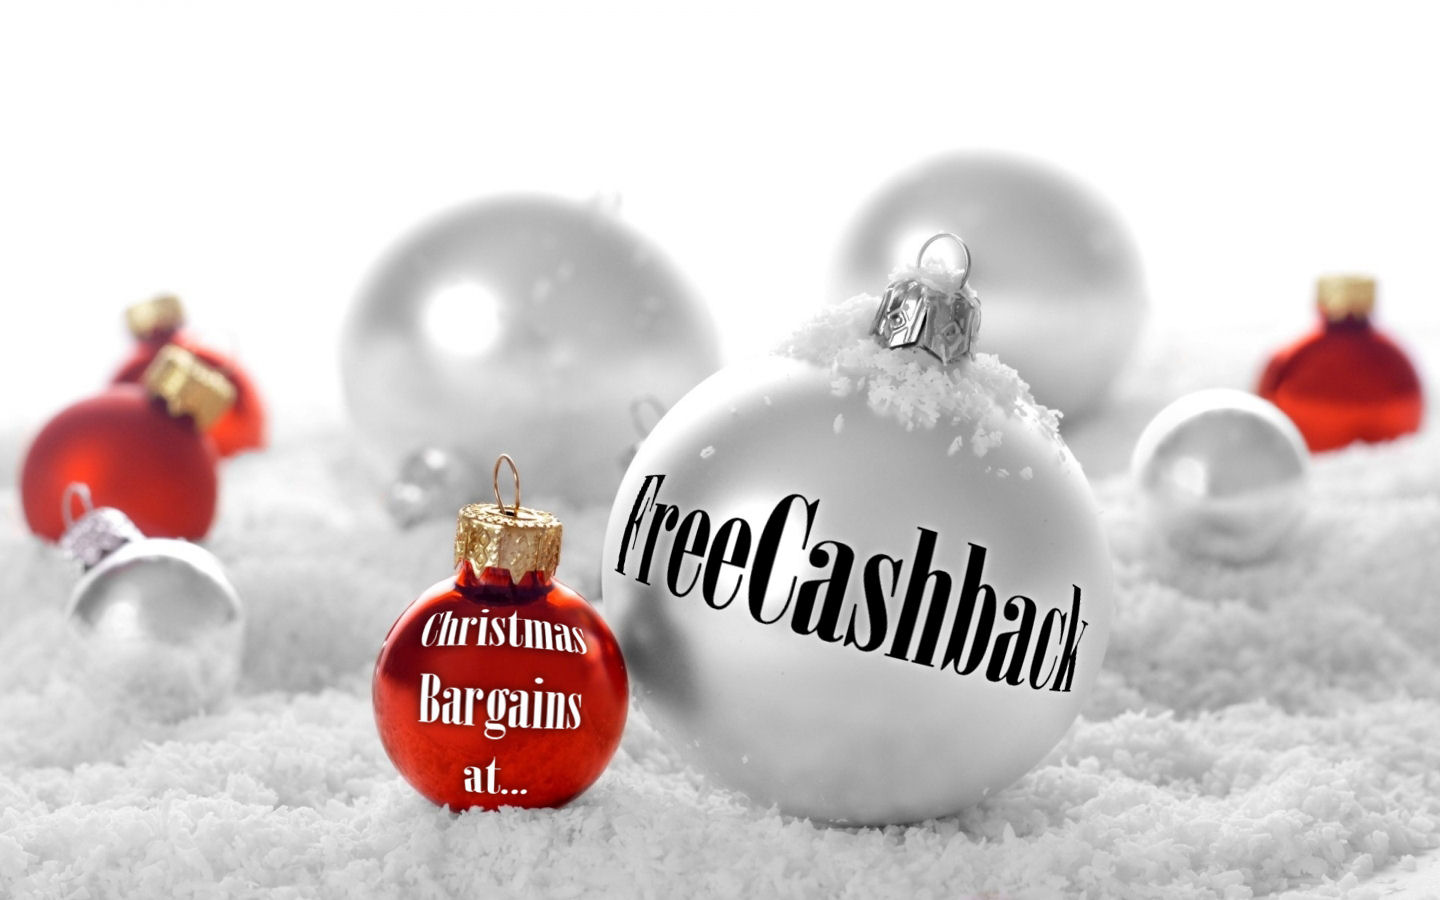 FreeCashback.co.uk is the home for all your Christmas shopping needs!